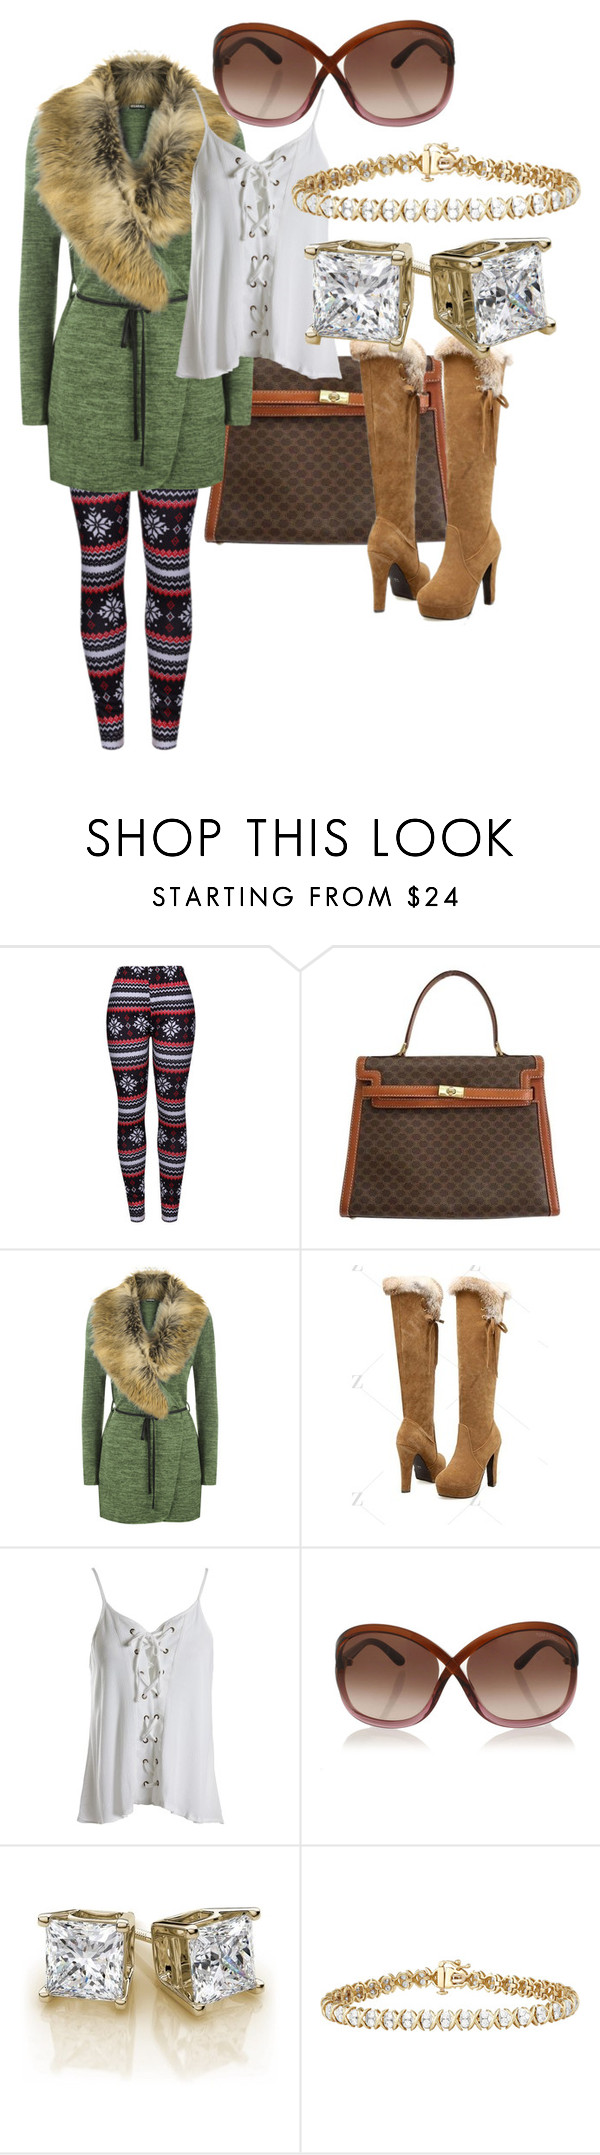 """weekend"" by sally-conarty ❤ liked on Polyvore featuring WithChic, CÉLINE, WearAll, Sans Souci and Tom Ford"